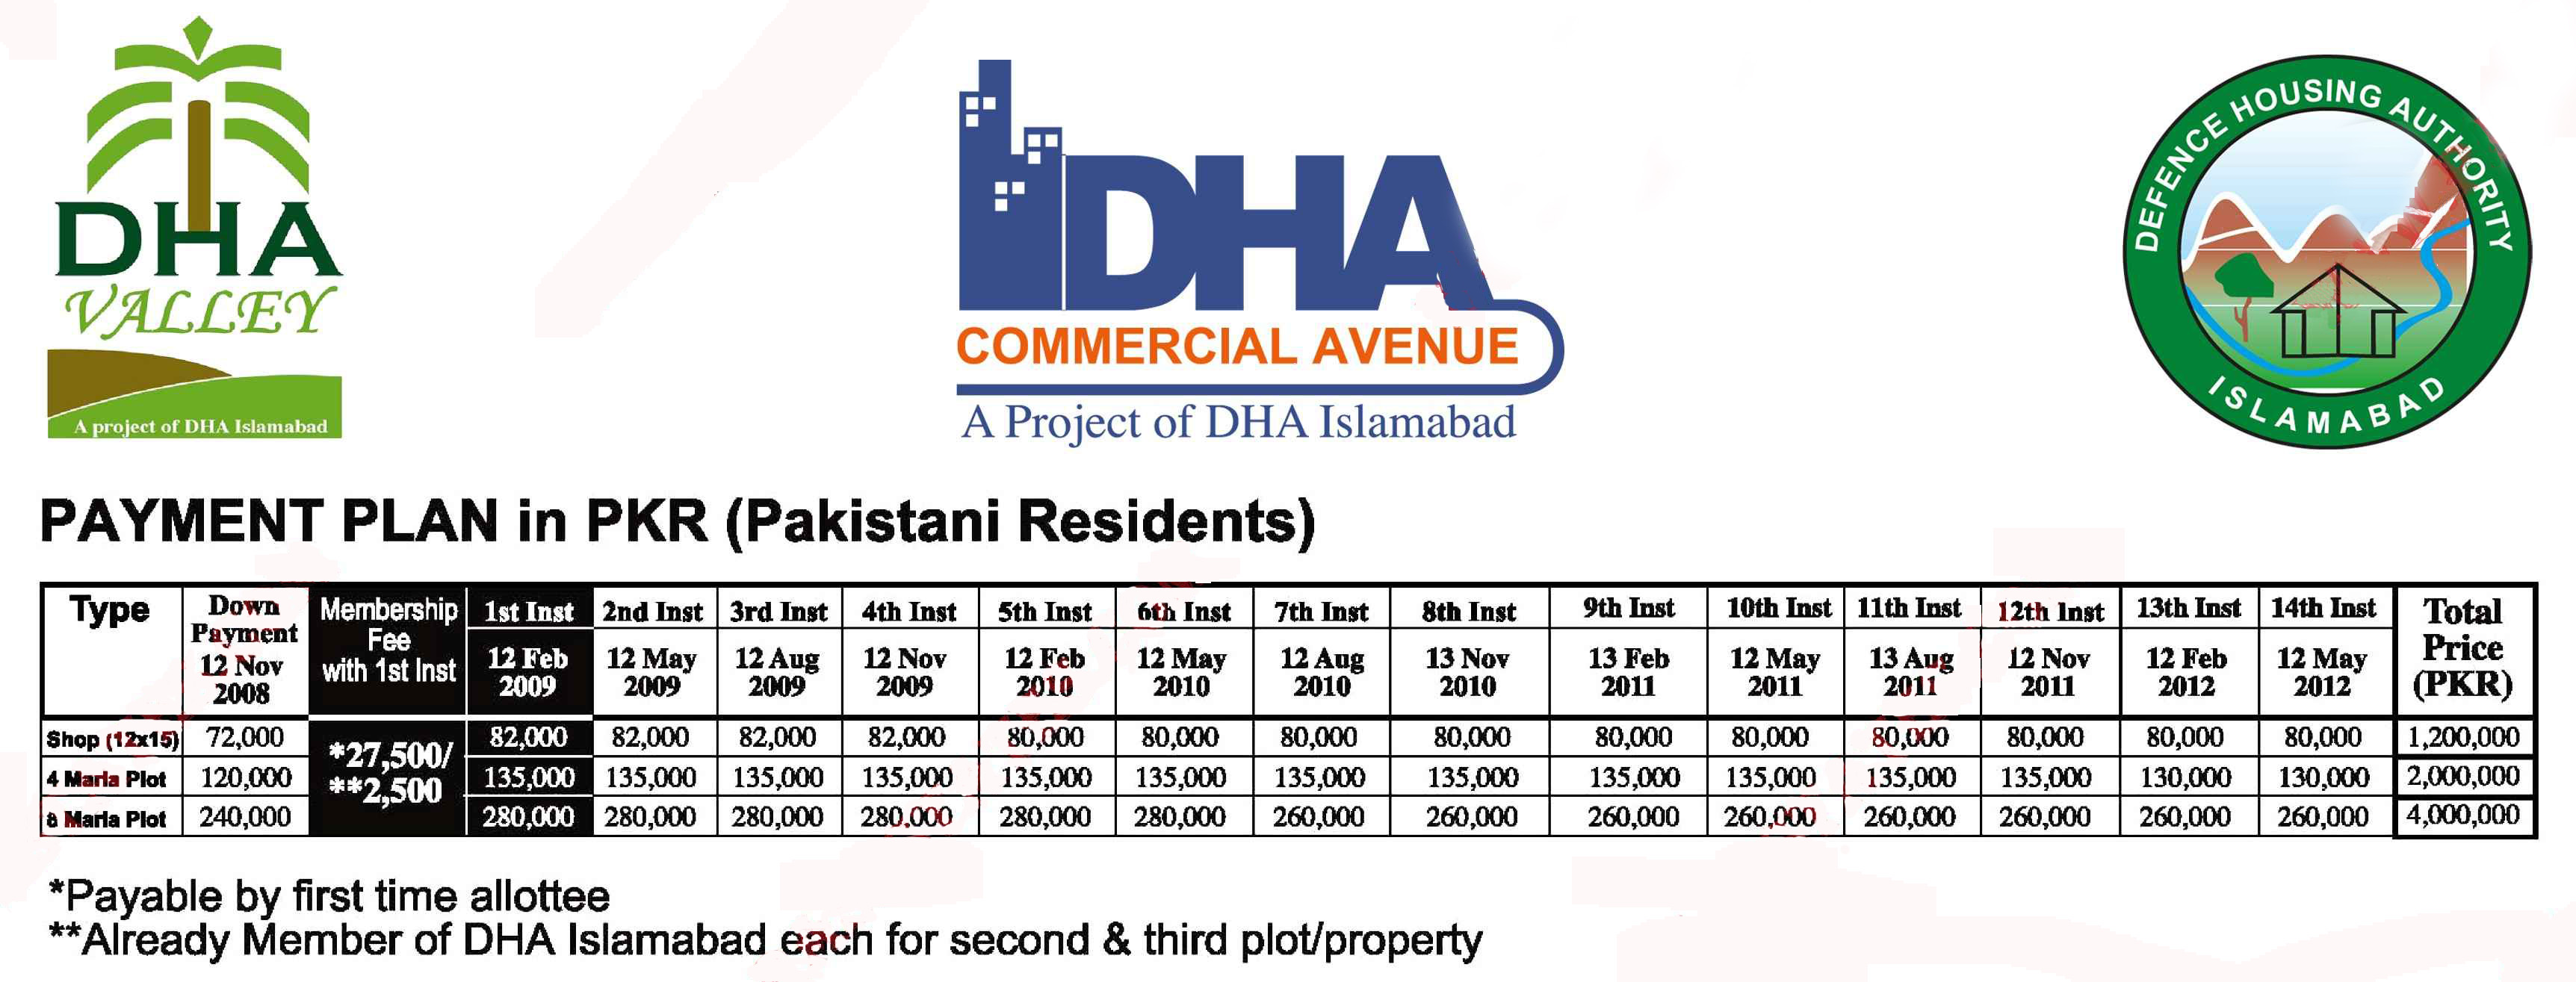 Price Of Commercial Property In Karach Dha